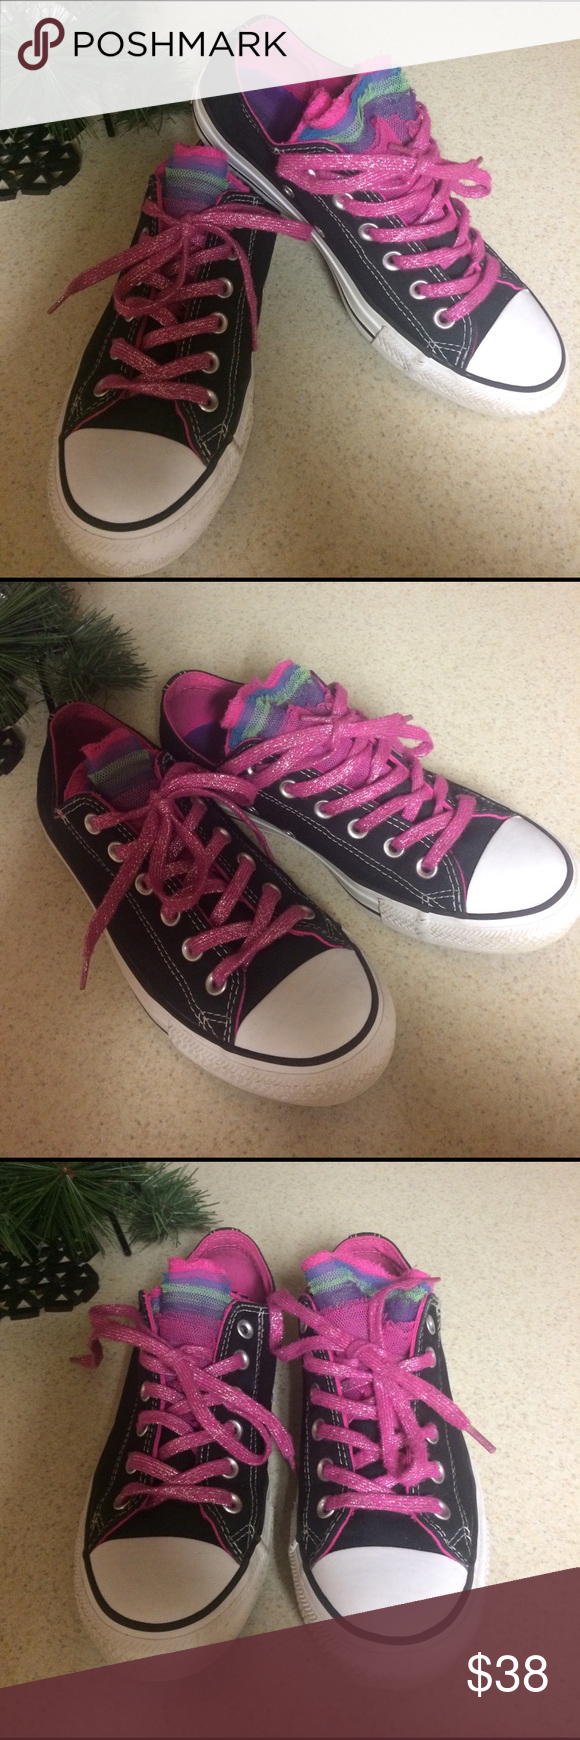 Converse Beautiful Converse Sneakers, Rainbow Fishnet, black with pink/glitter laces. Worn twice, still looks new. Converse Shoes Sneakers